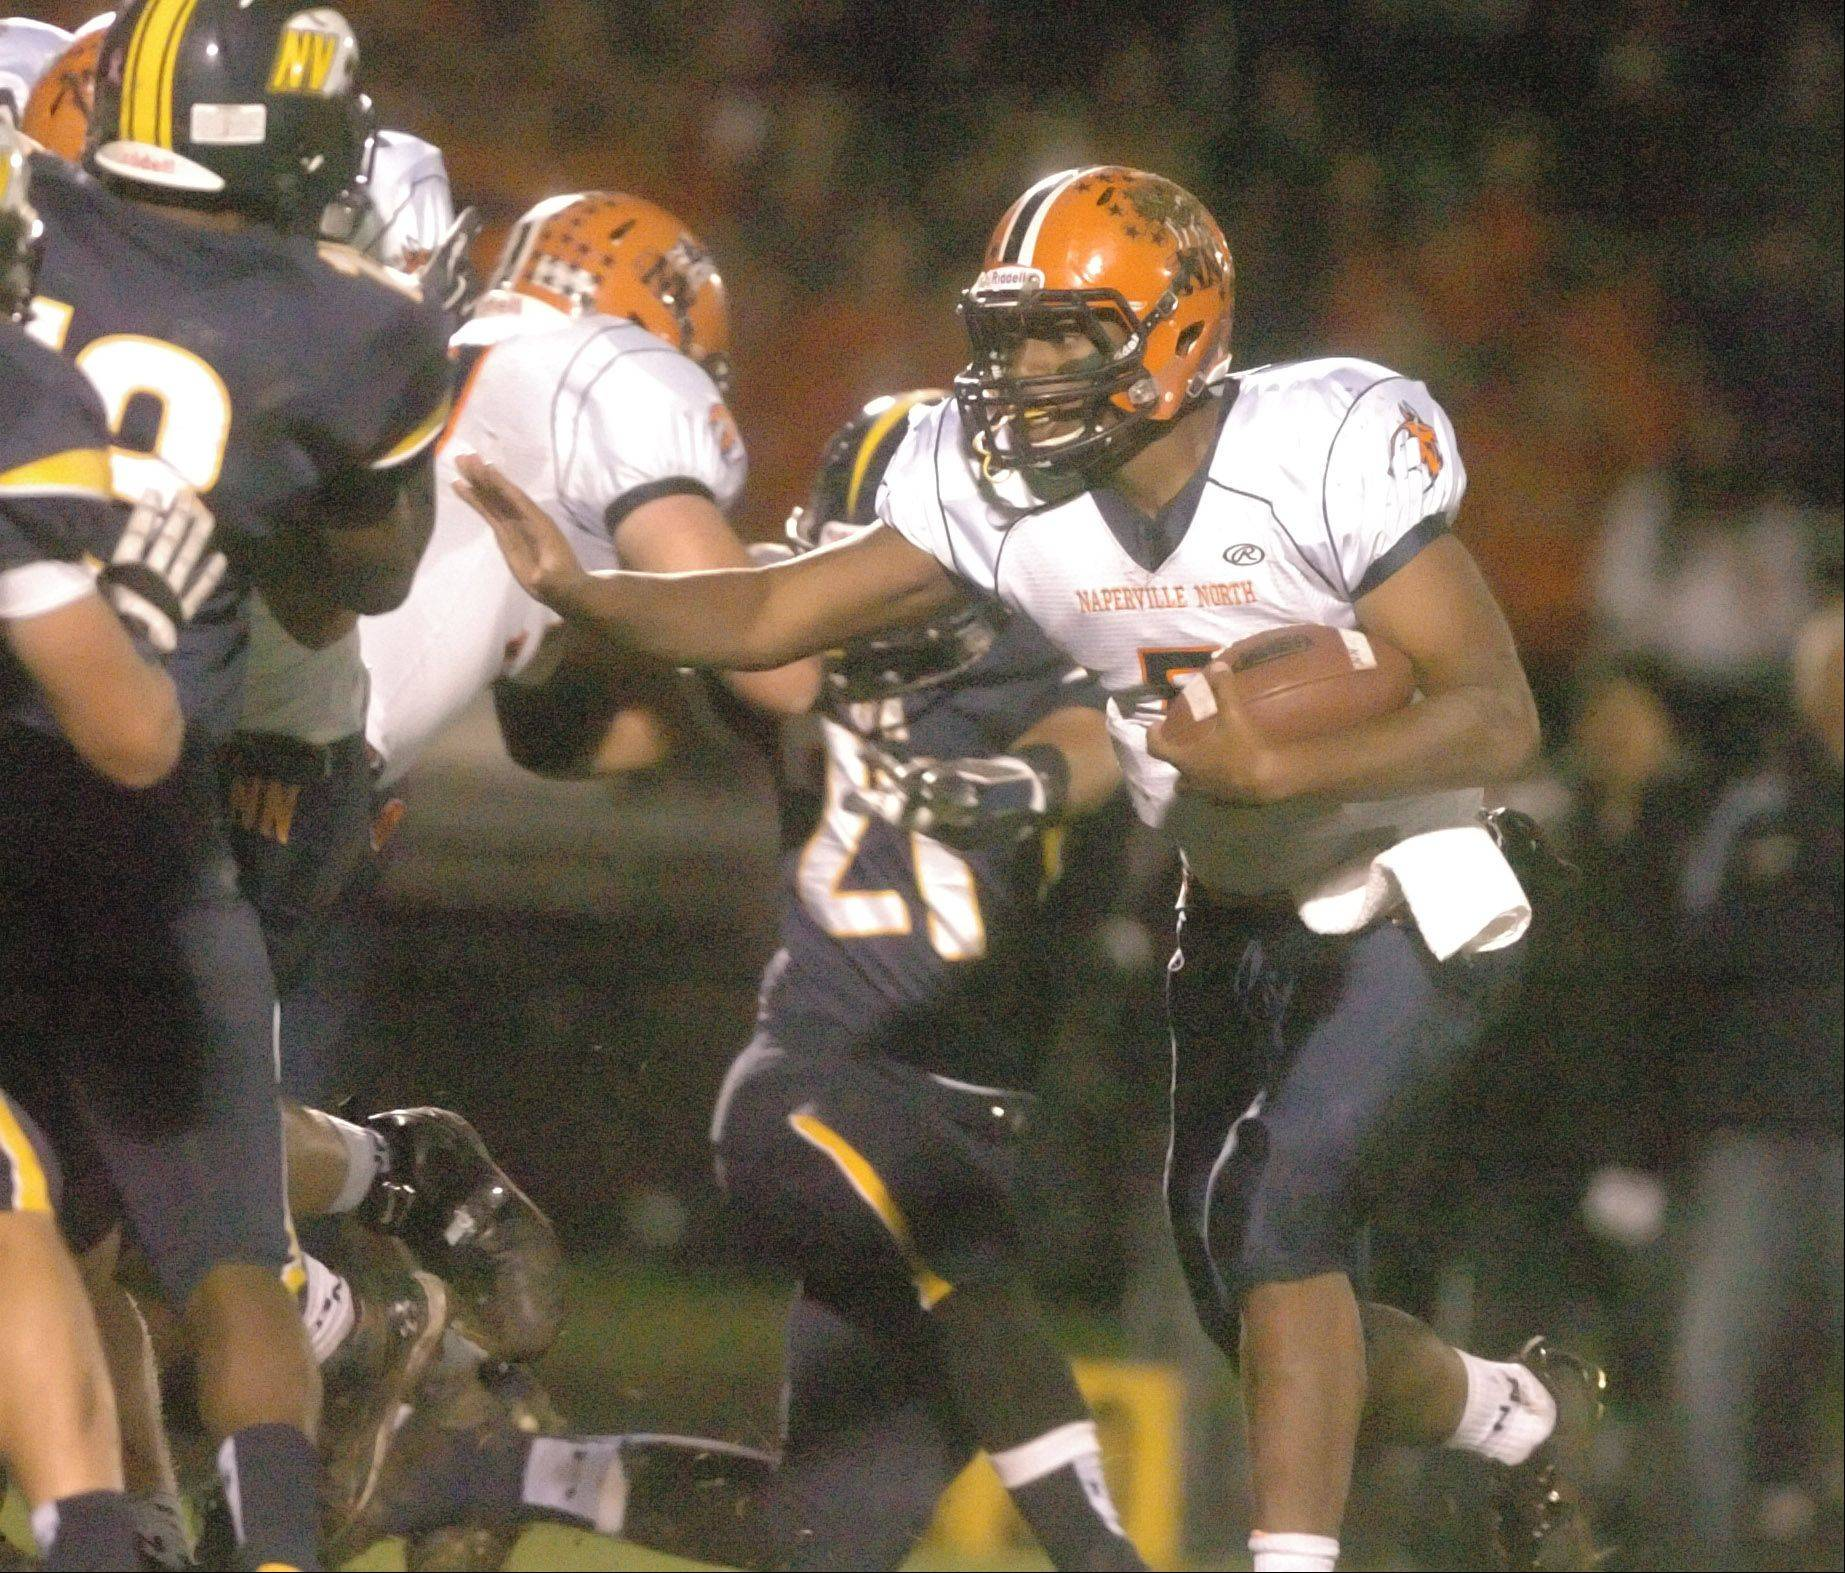 Johnny Brown of Naperville North looks for a hole during the Naperville North at Neuqua Valley football game Friday.